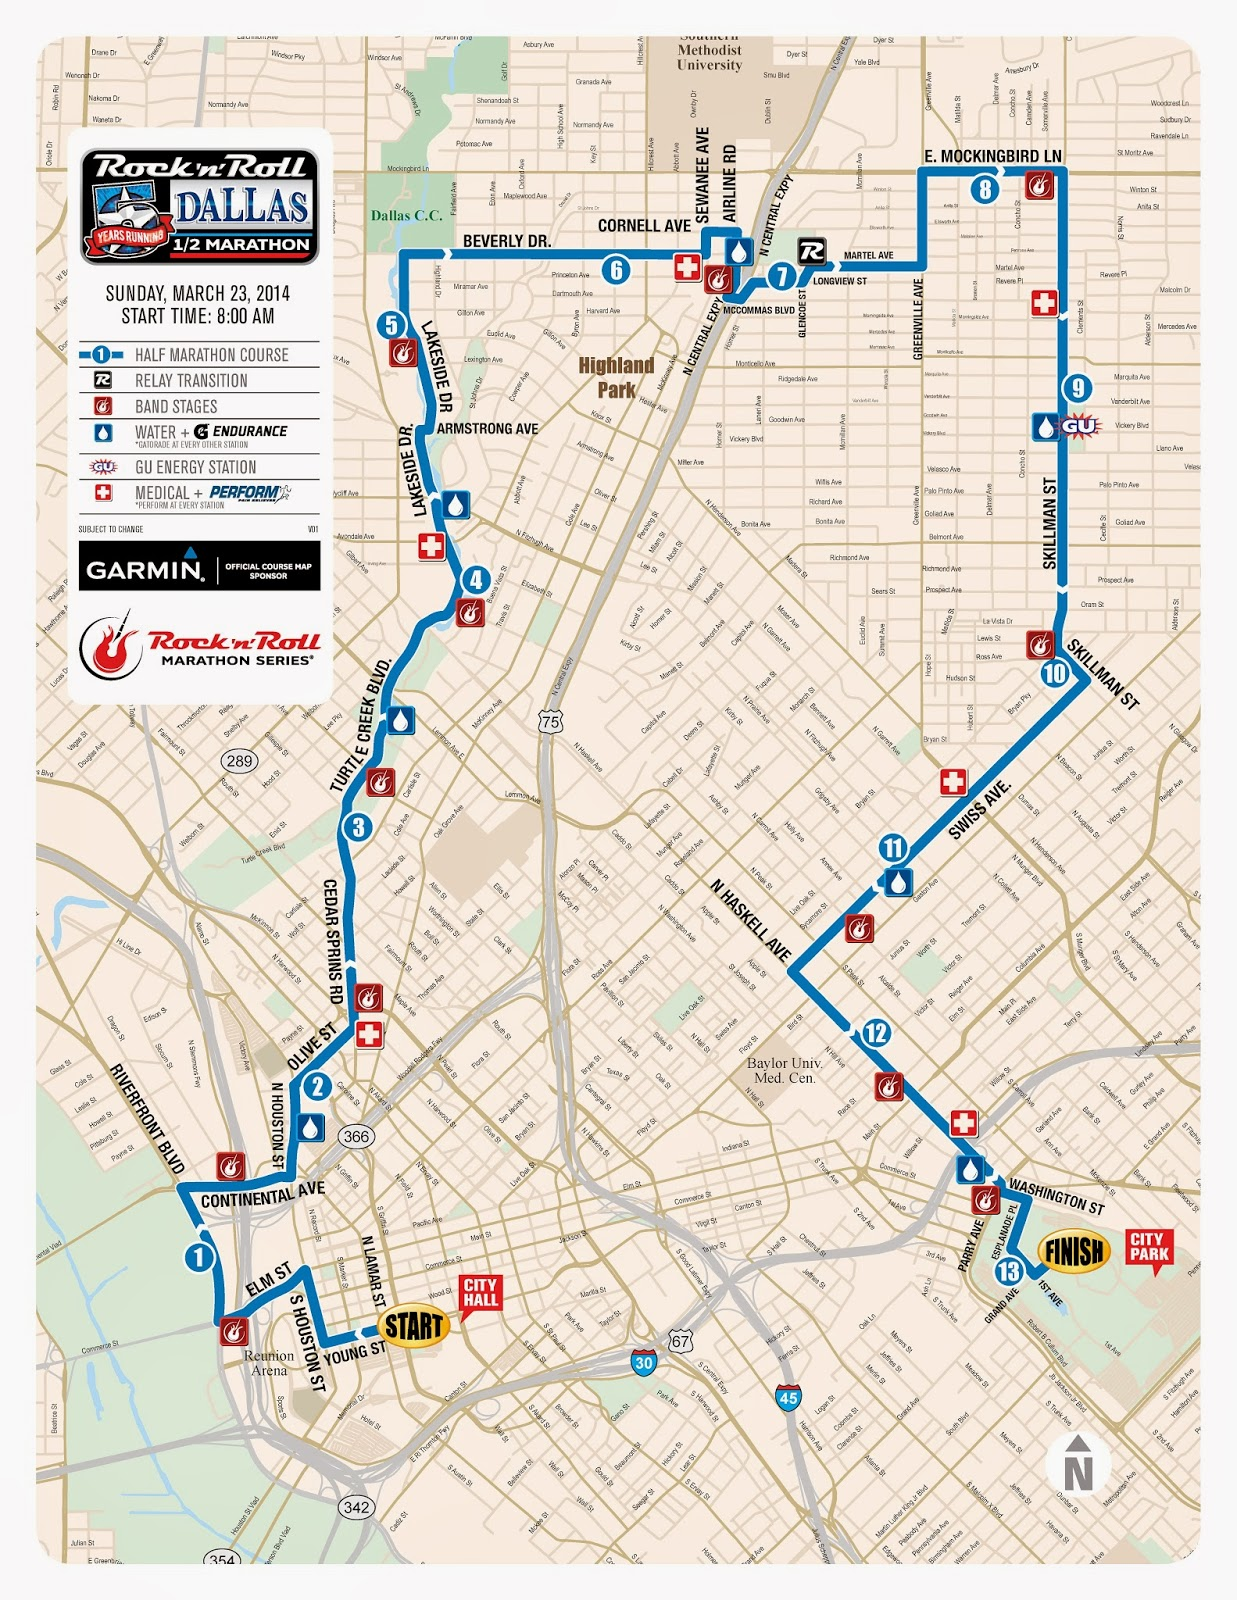 Rock 'n Roll Dallas Half Marathon Course